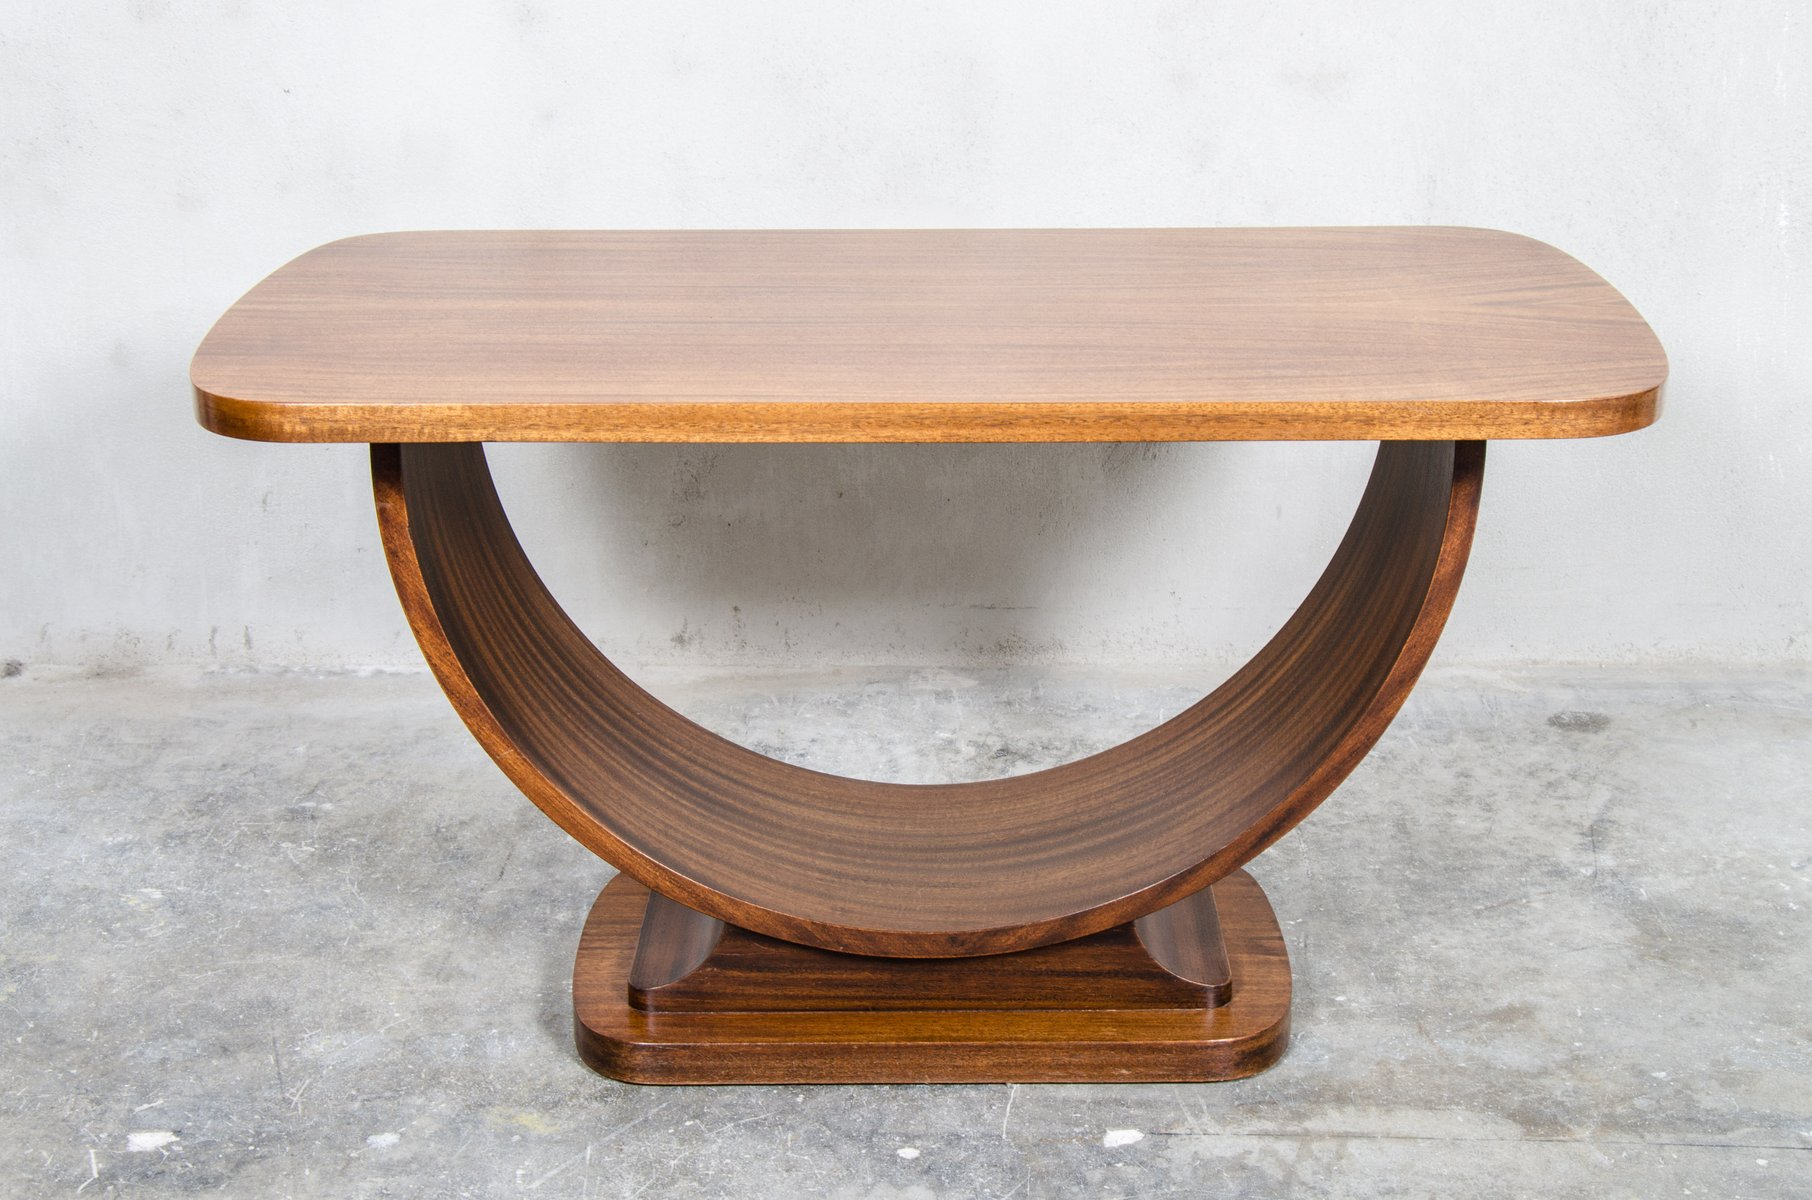 Belgian Teak Art Deco Side Table 1920s for sale at Pamono